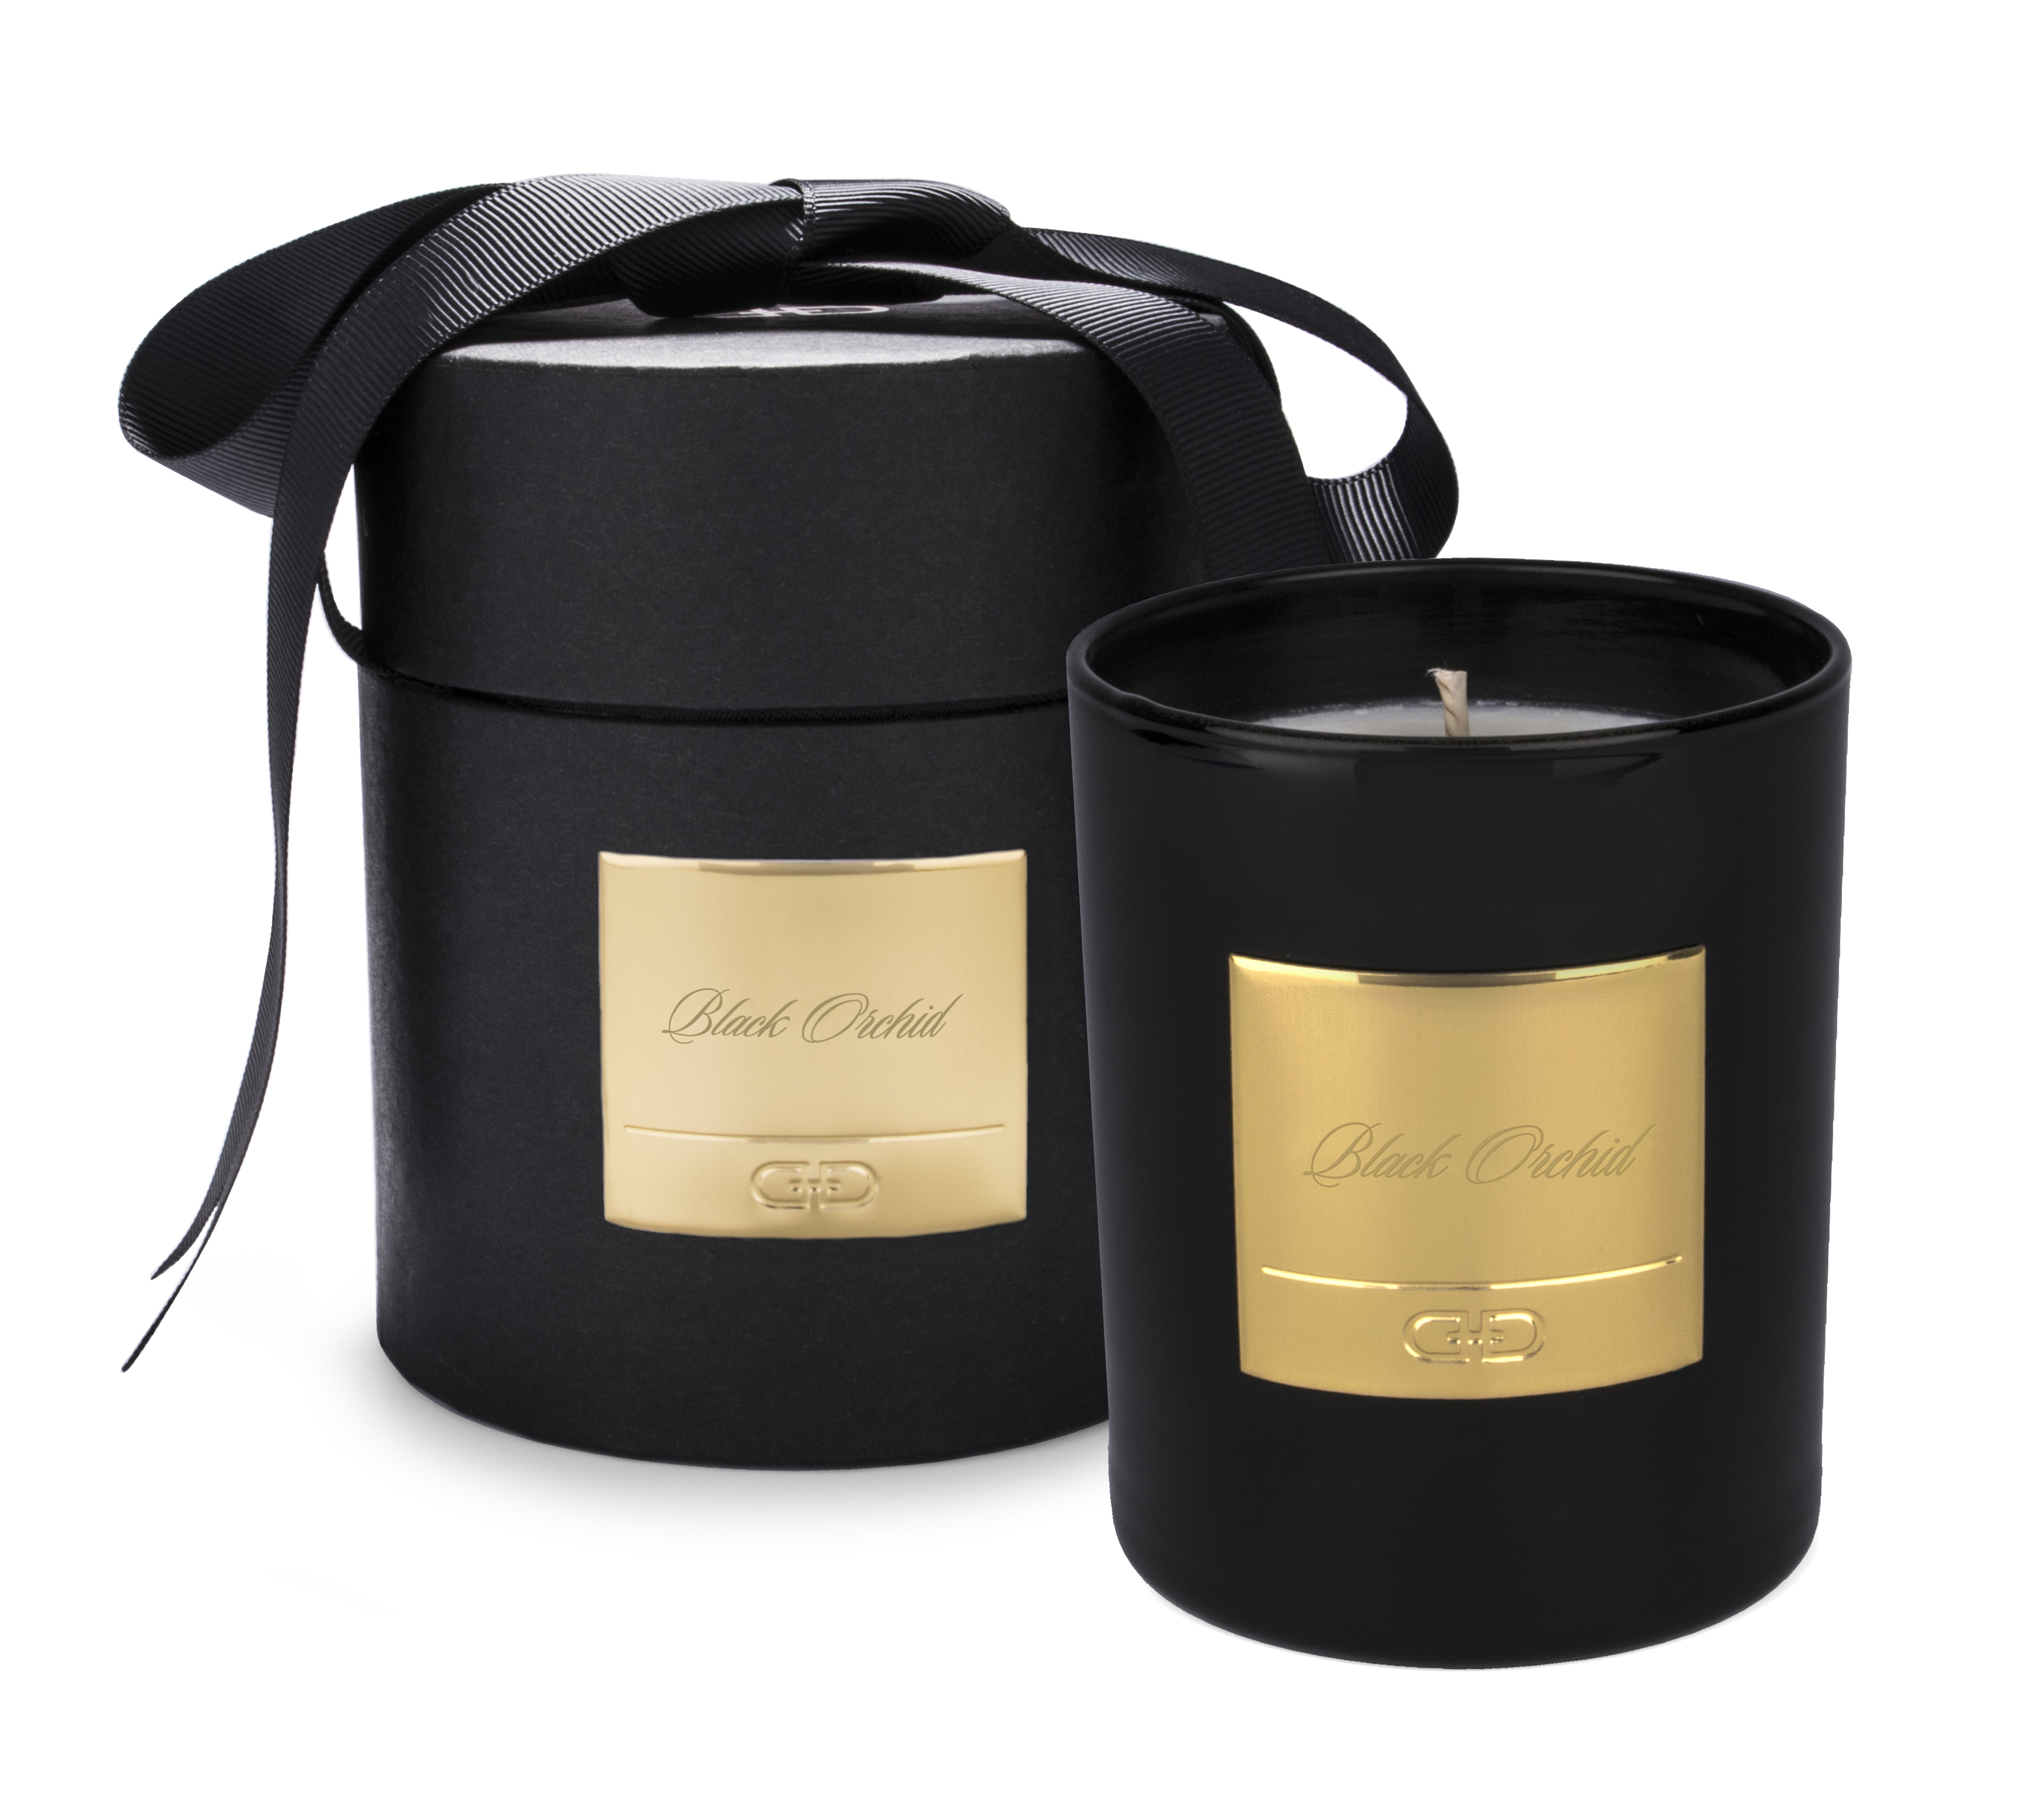 Black Orchid – Black & Gold luxury candle